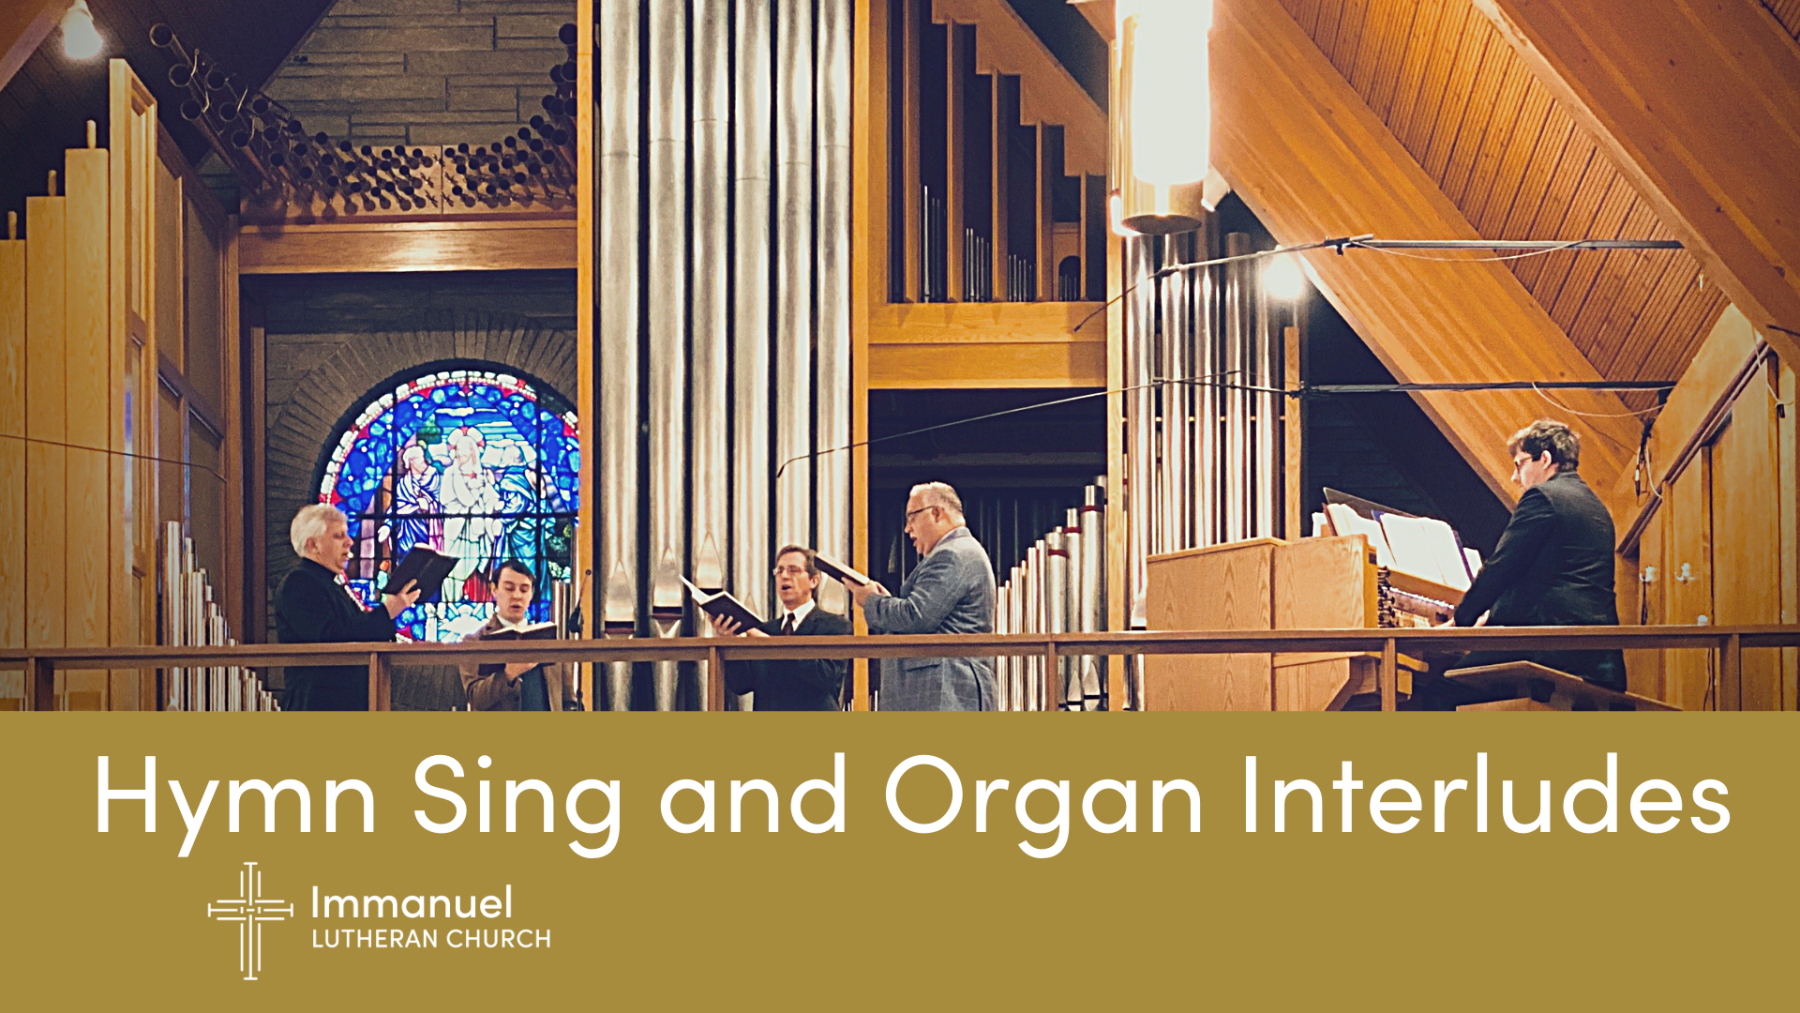 Hymn Sing and Organ Interludes